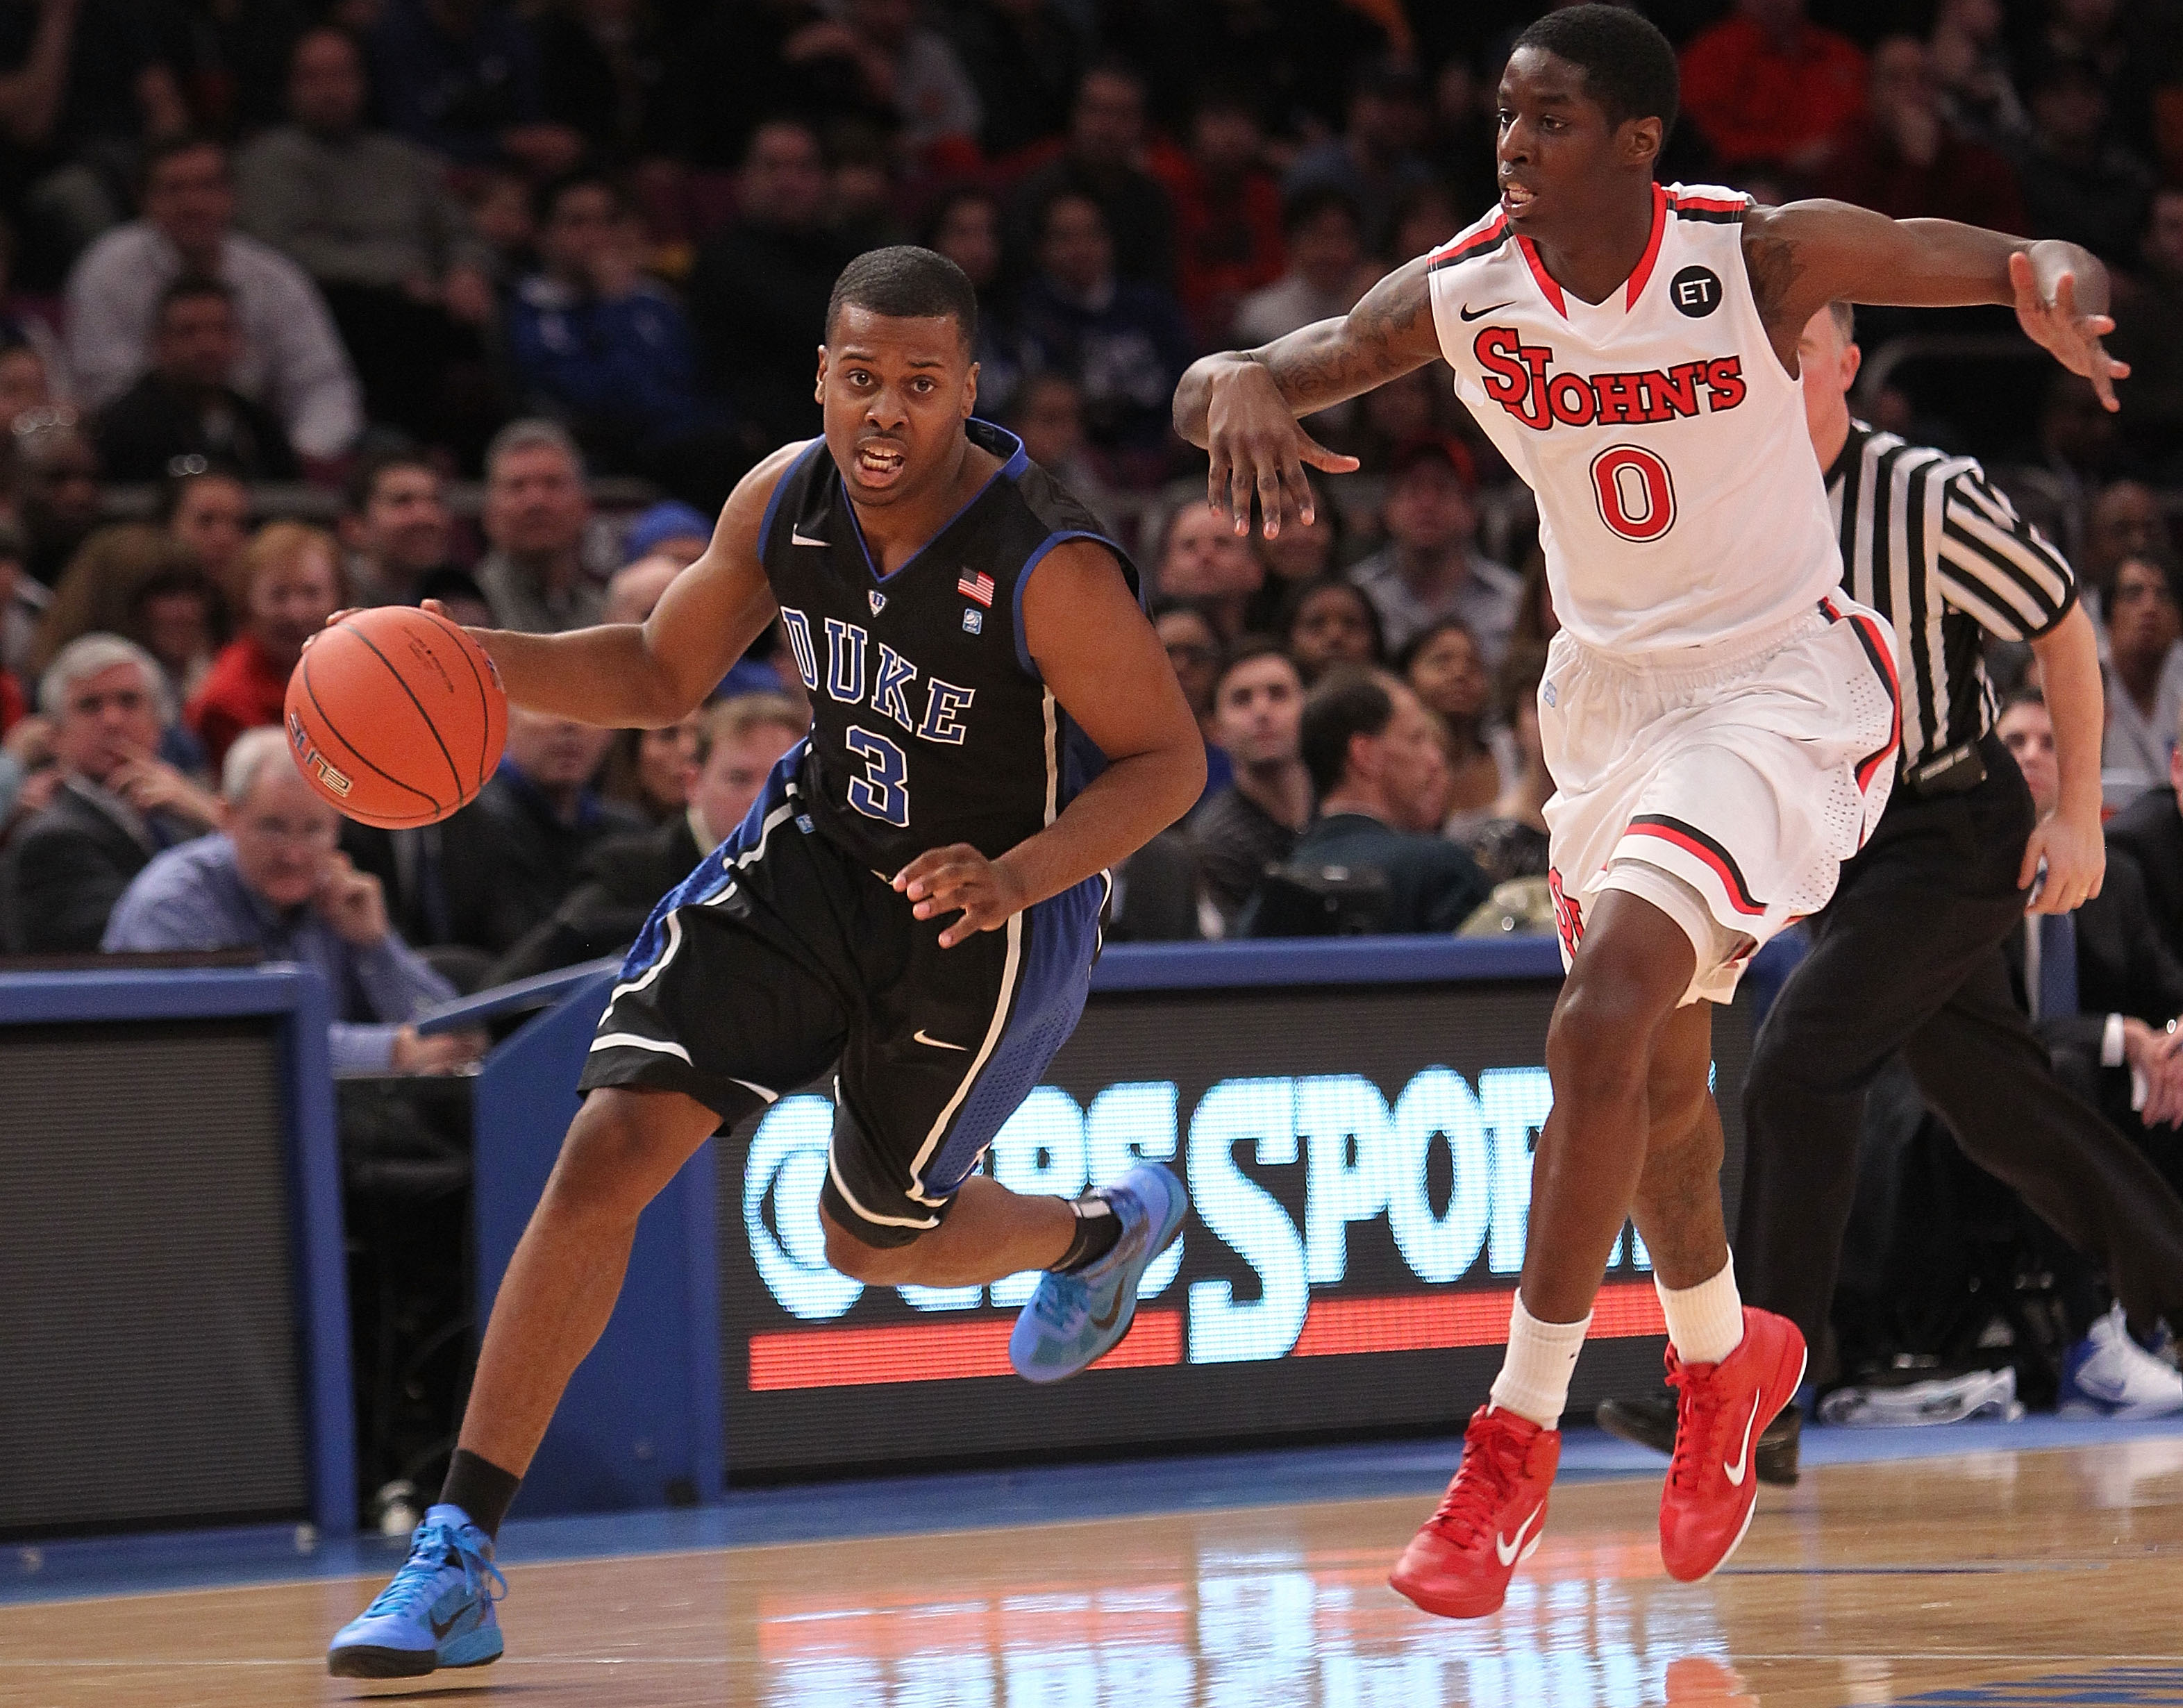 NEW YORK, NY - JANUARY 30:  Tyler Thornton #3 of the Duke Blue Devils dribbles the ball against Dwayne Polee II #0 of the St. John's Red Storm at Madison Square Garden on January 30, 2011 in New York City.  (Photo by Nick Laham/Getty Images)